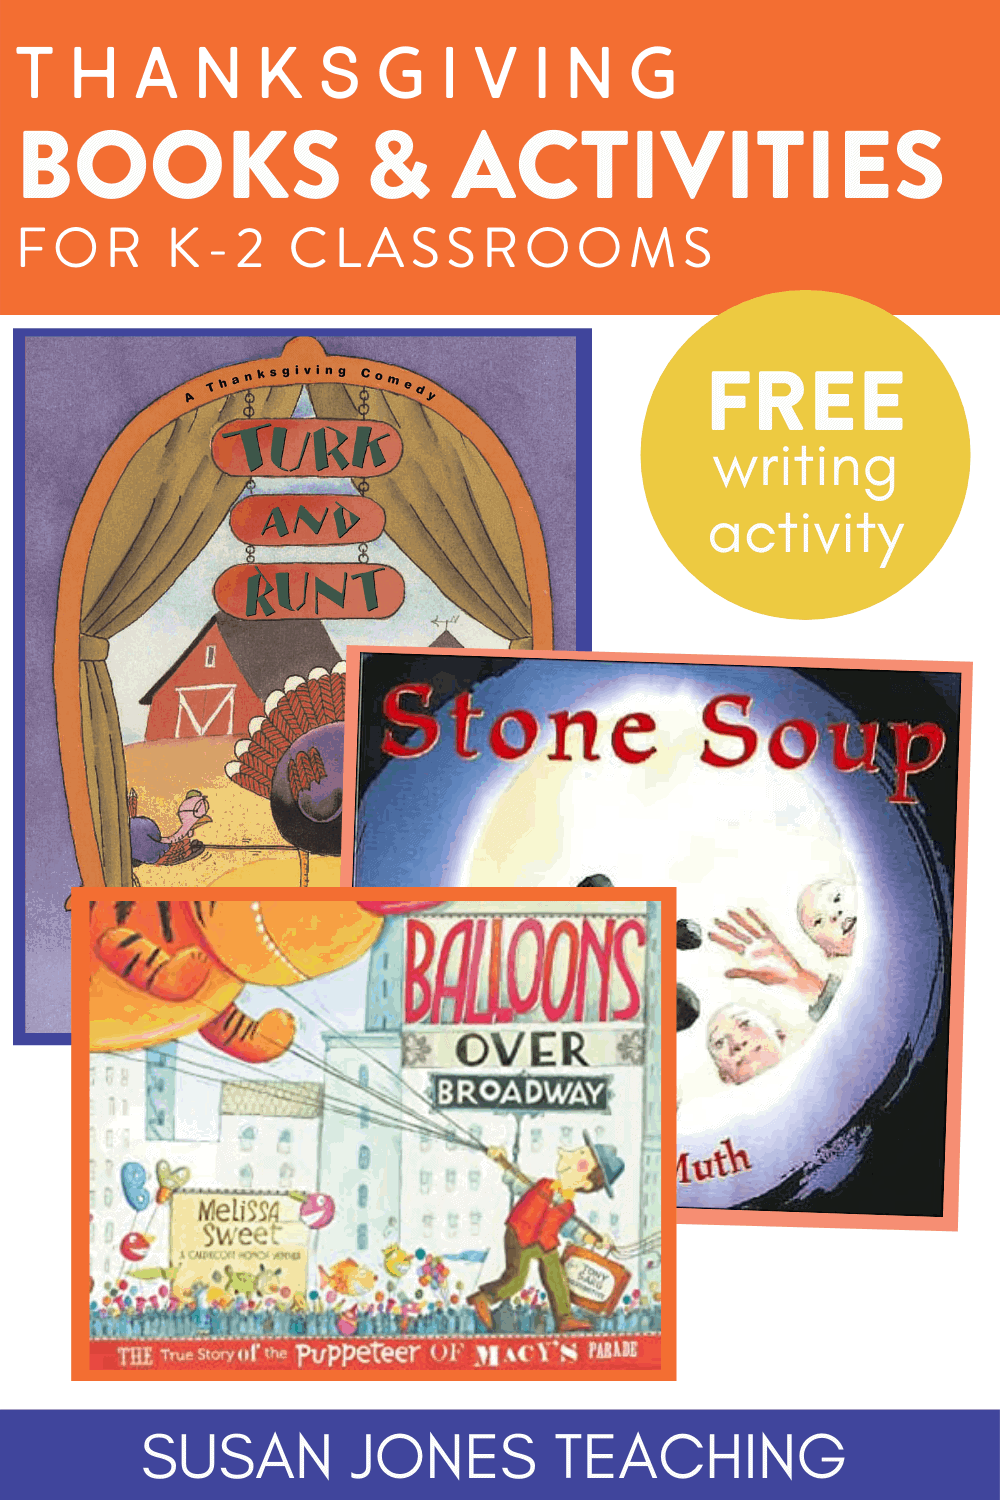 Looking for some new Thanksgiving and November themed books to read aloud to your kindergarten, first grade, and second grade students?! These books and activities to go along with them are perfect for your classroom! I share a FREE digital and printable writing activity in the post as well! Click over to read more!